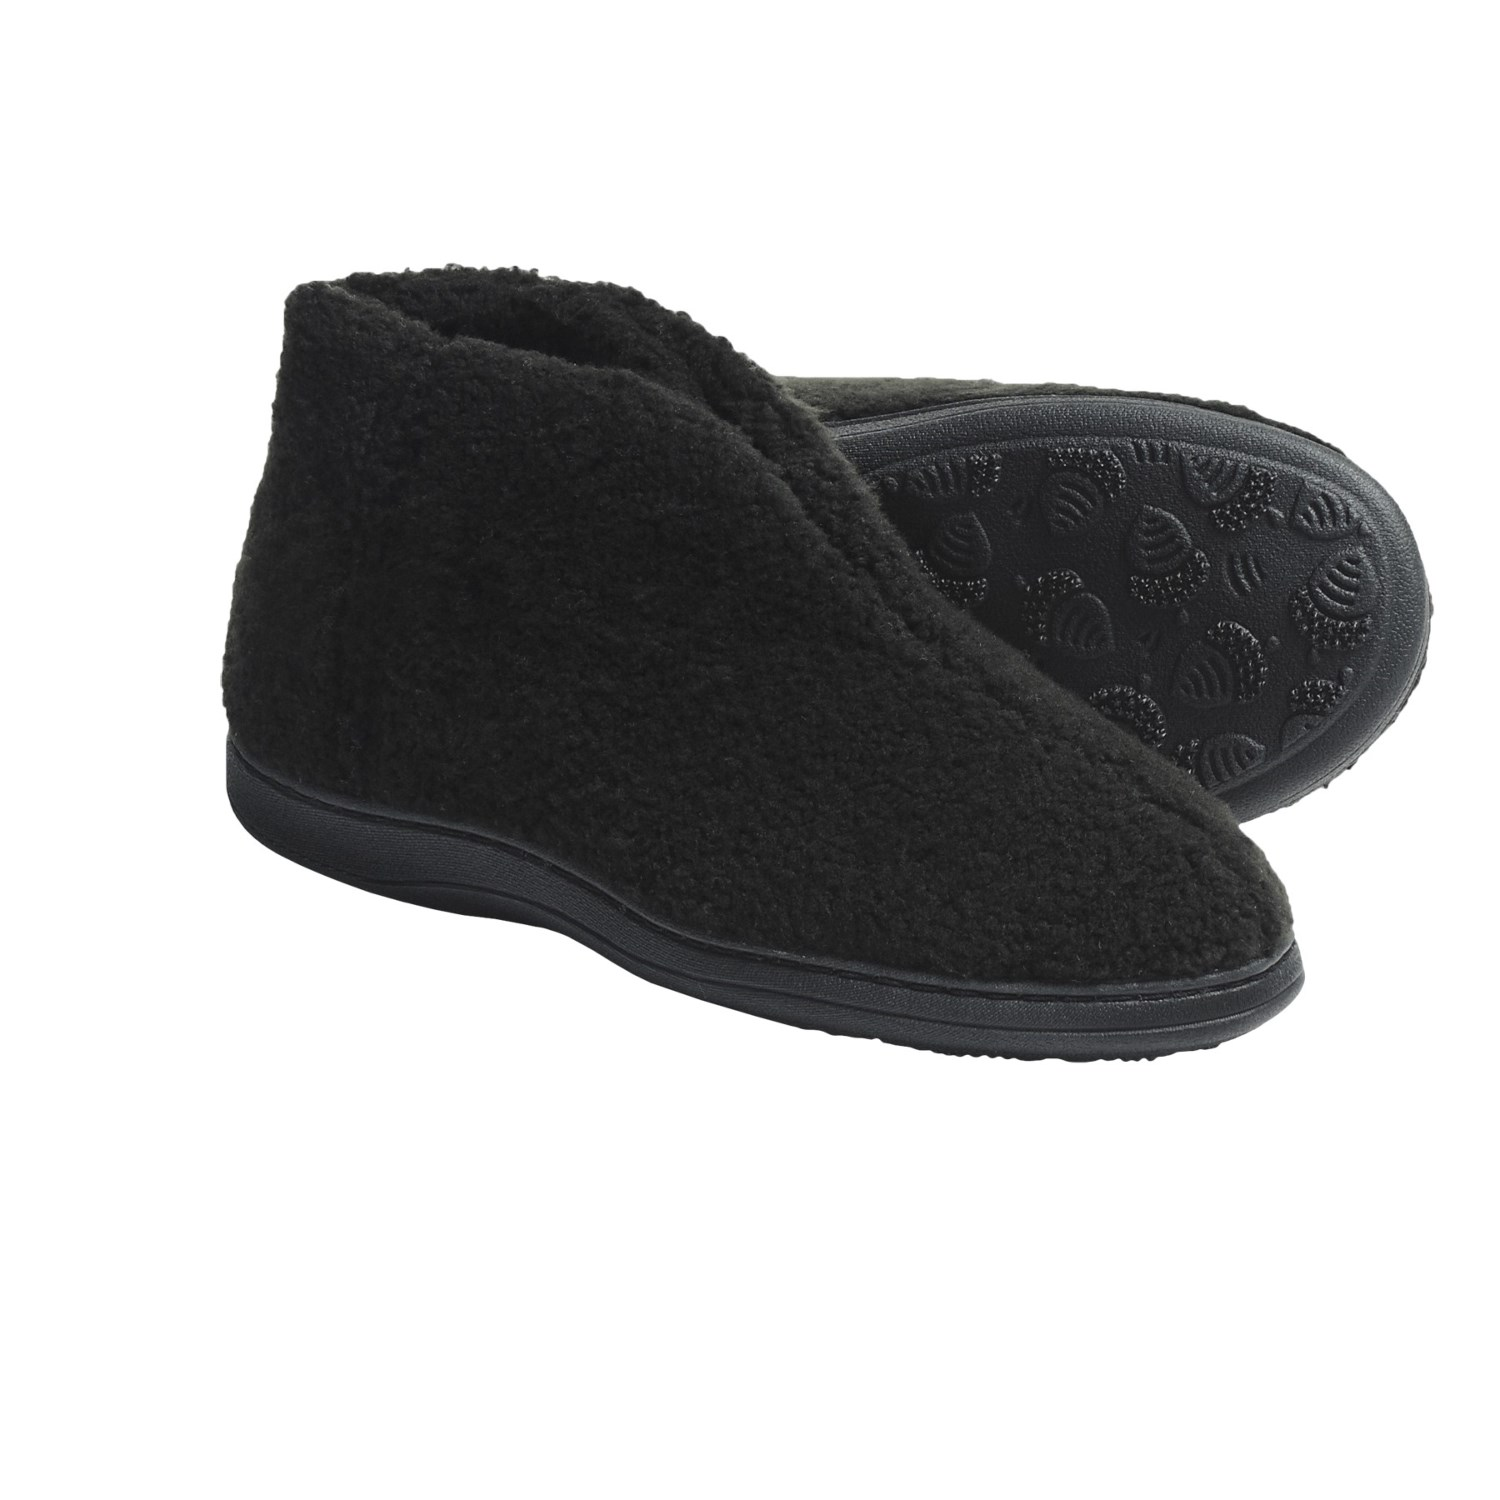 The Best Slippers for Women and Men. Updated October 9, The best slippers for women. Stegmann offers solid everyday footwear, but most of our testers found their designs too stiff to be worn as a cozy slipper or forgiving house shoe.